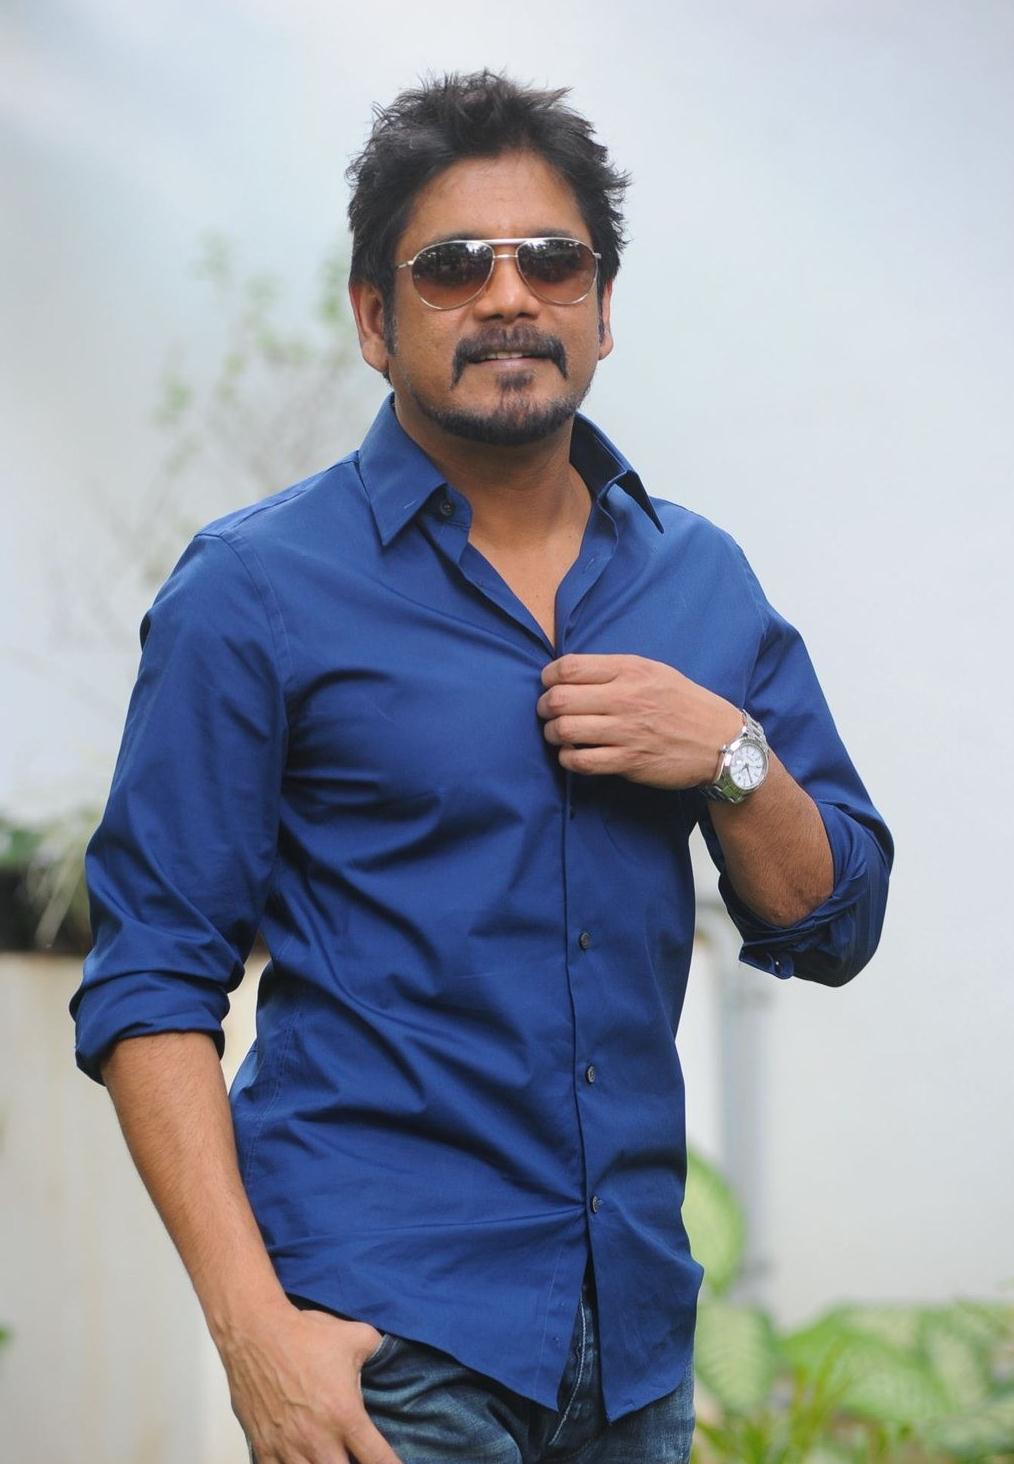 http://data1.ibtimes.co.in/en/full/567084/akkineni-nagarjuna.jpg